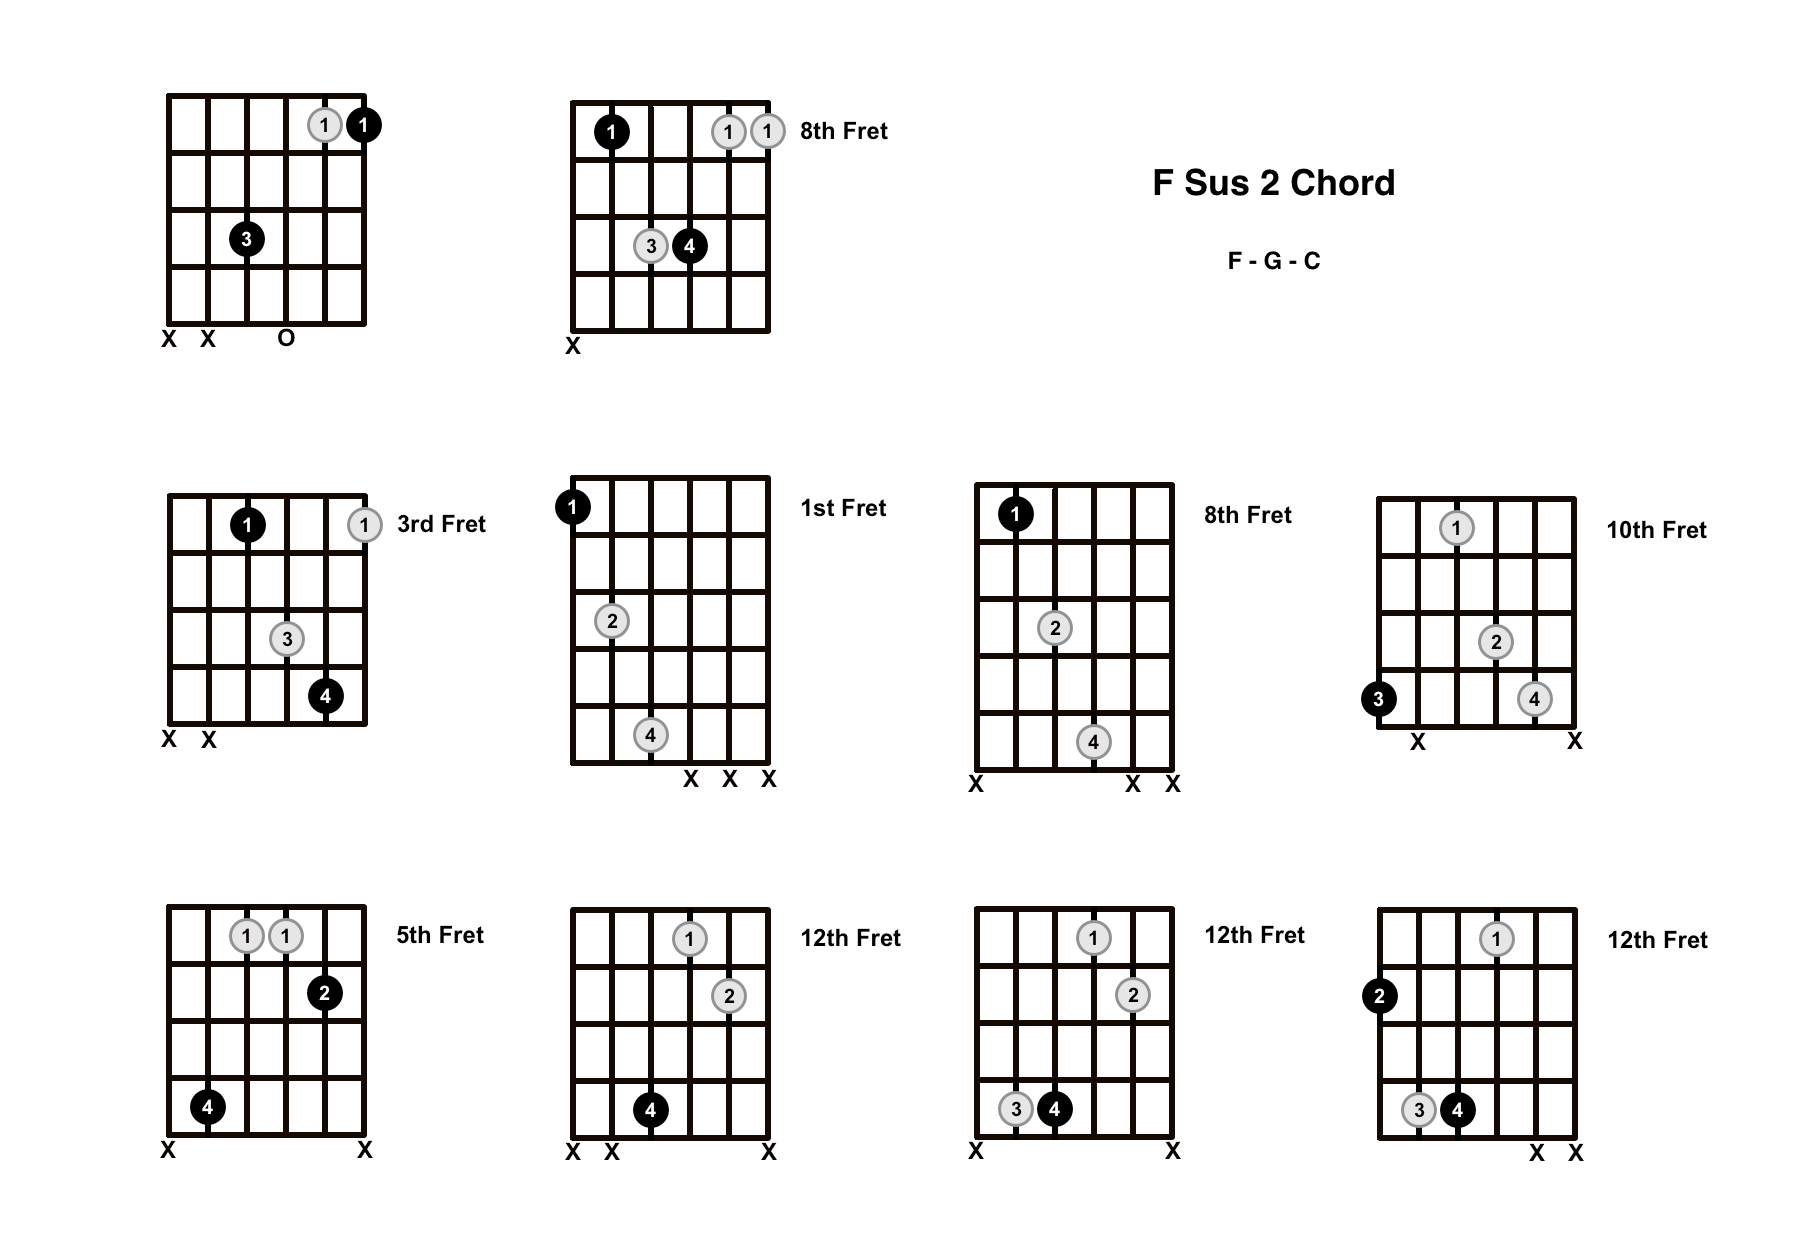 F Sus 2 Chord On The Guitar (F Suspended 2) – Diagrams, Finger Positions and Theory